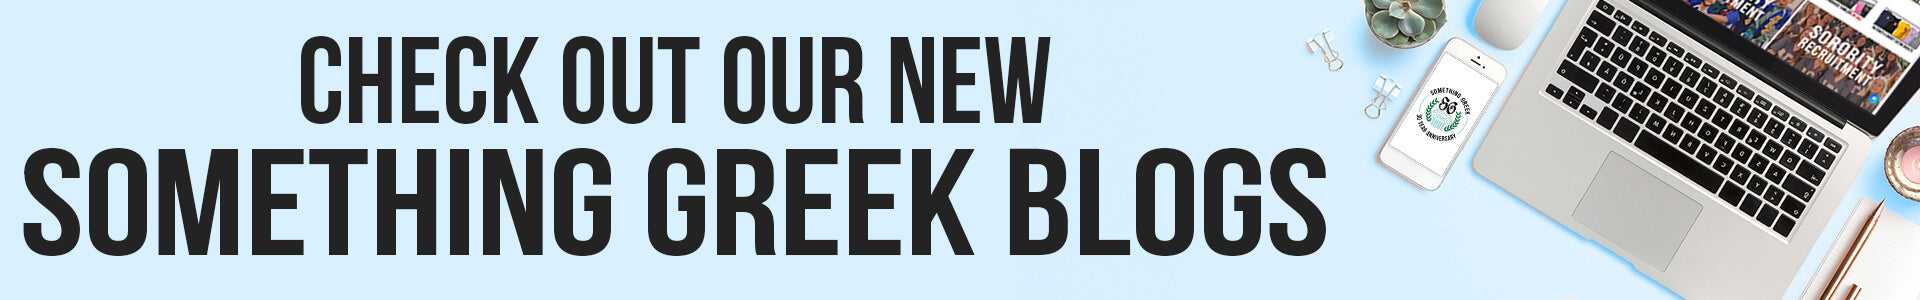 Check Out Our New Something Greek Blogs